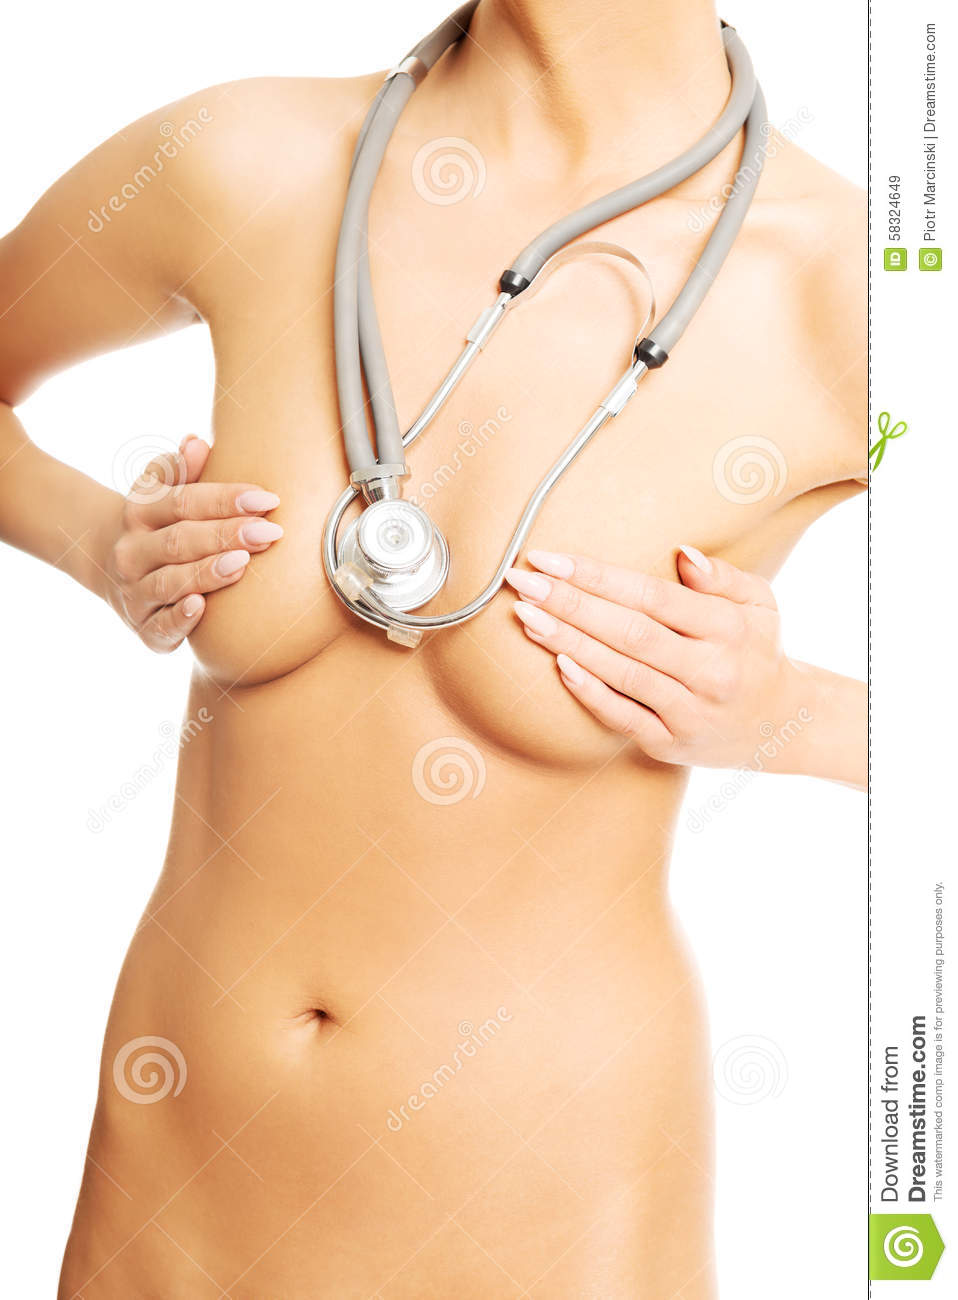 Breast picture of woman